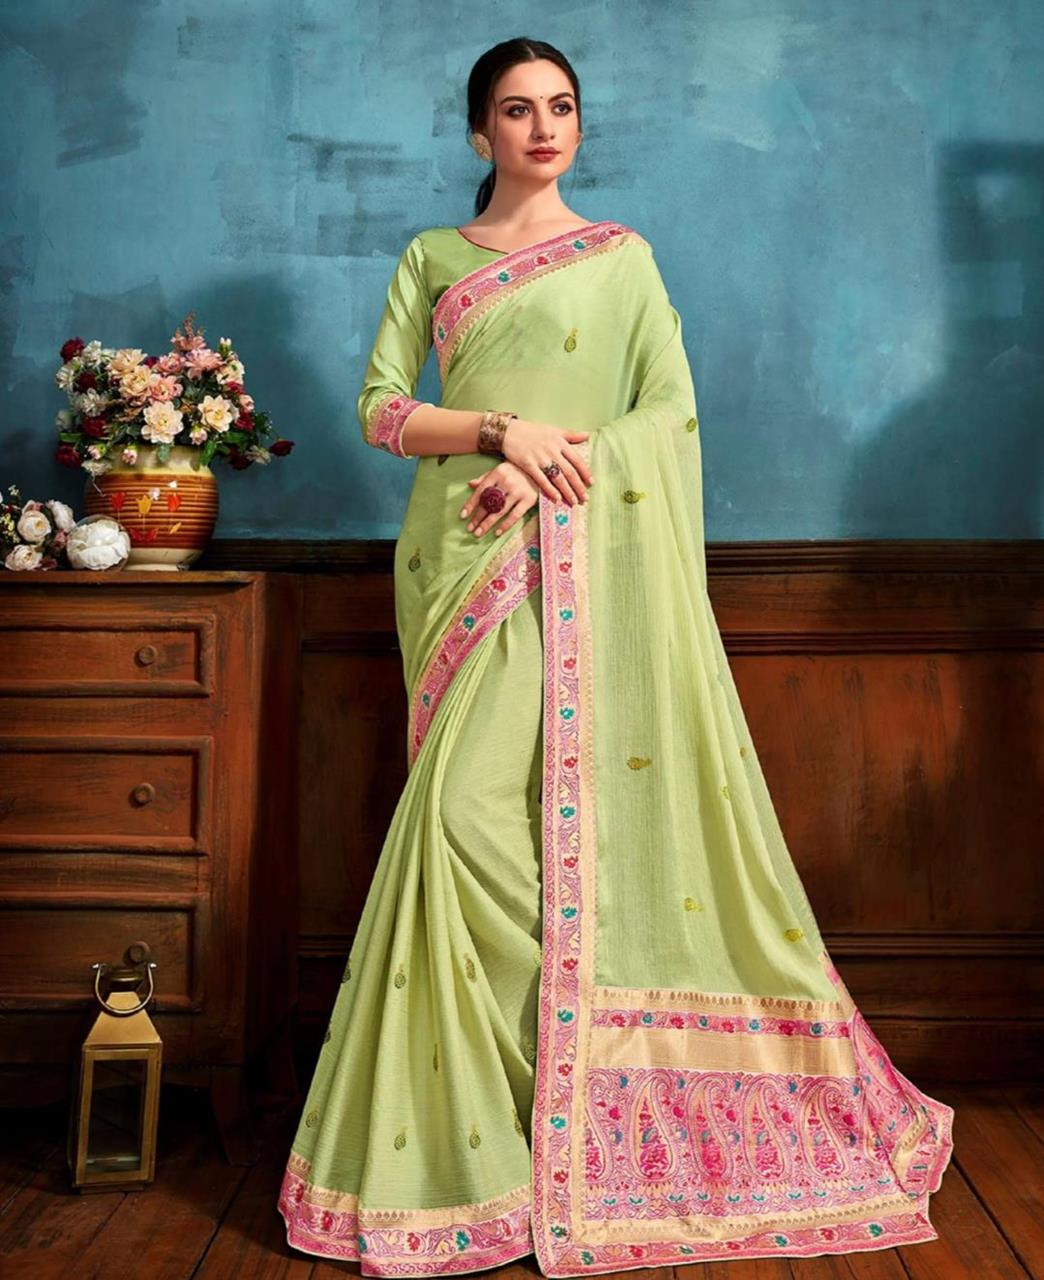 Printed Chiffon Saree in Light Green